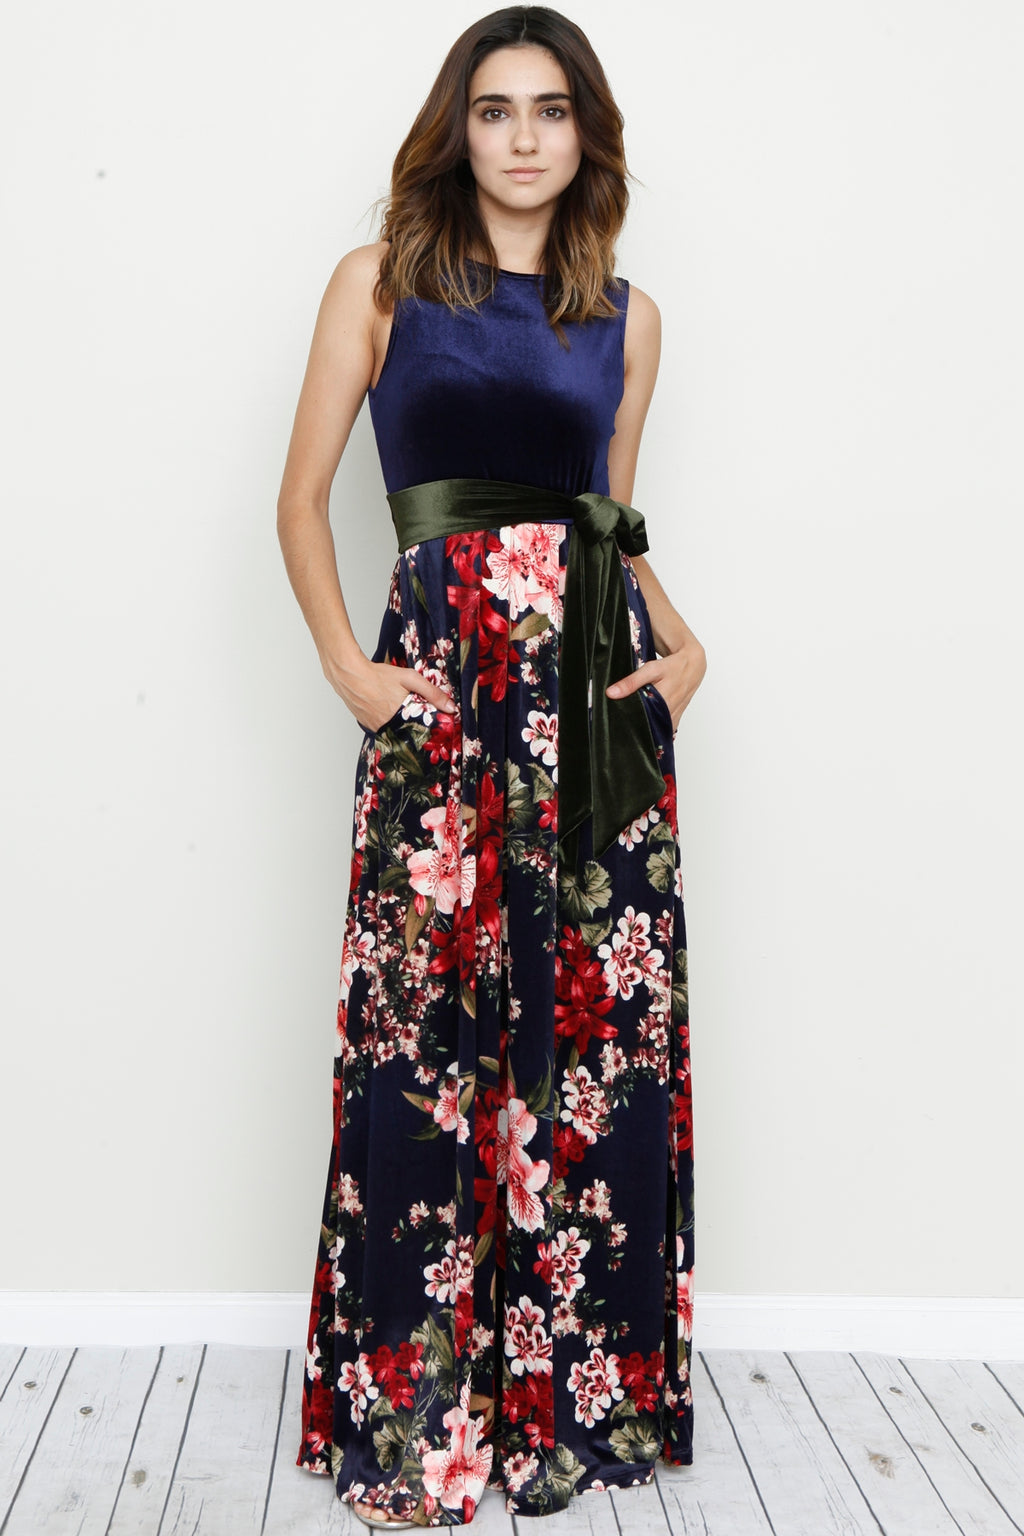 Velvet Navy Sleeveless Floral Maxi Dress with Sash_S